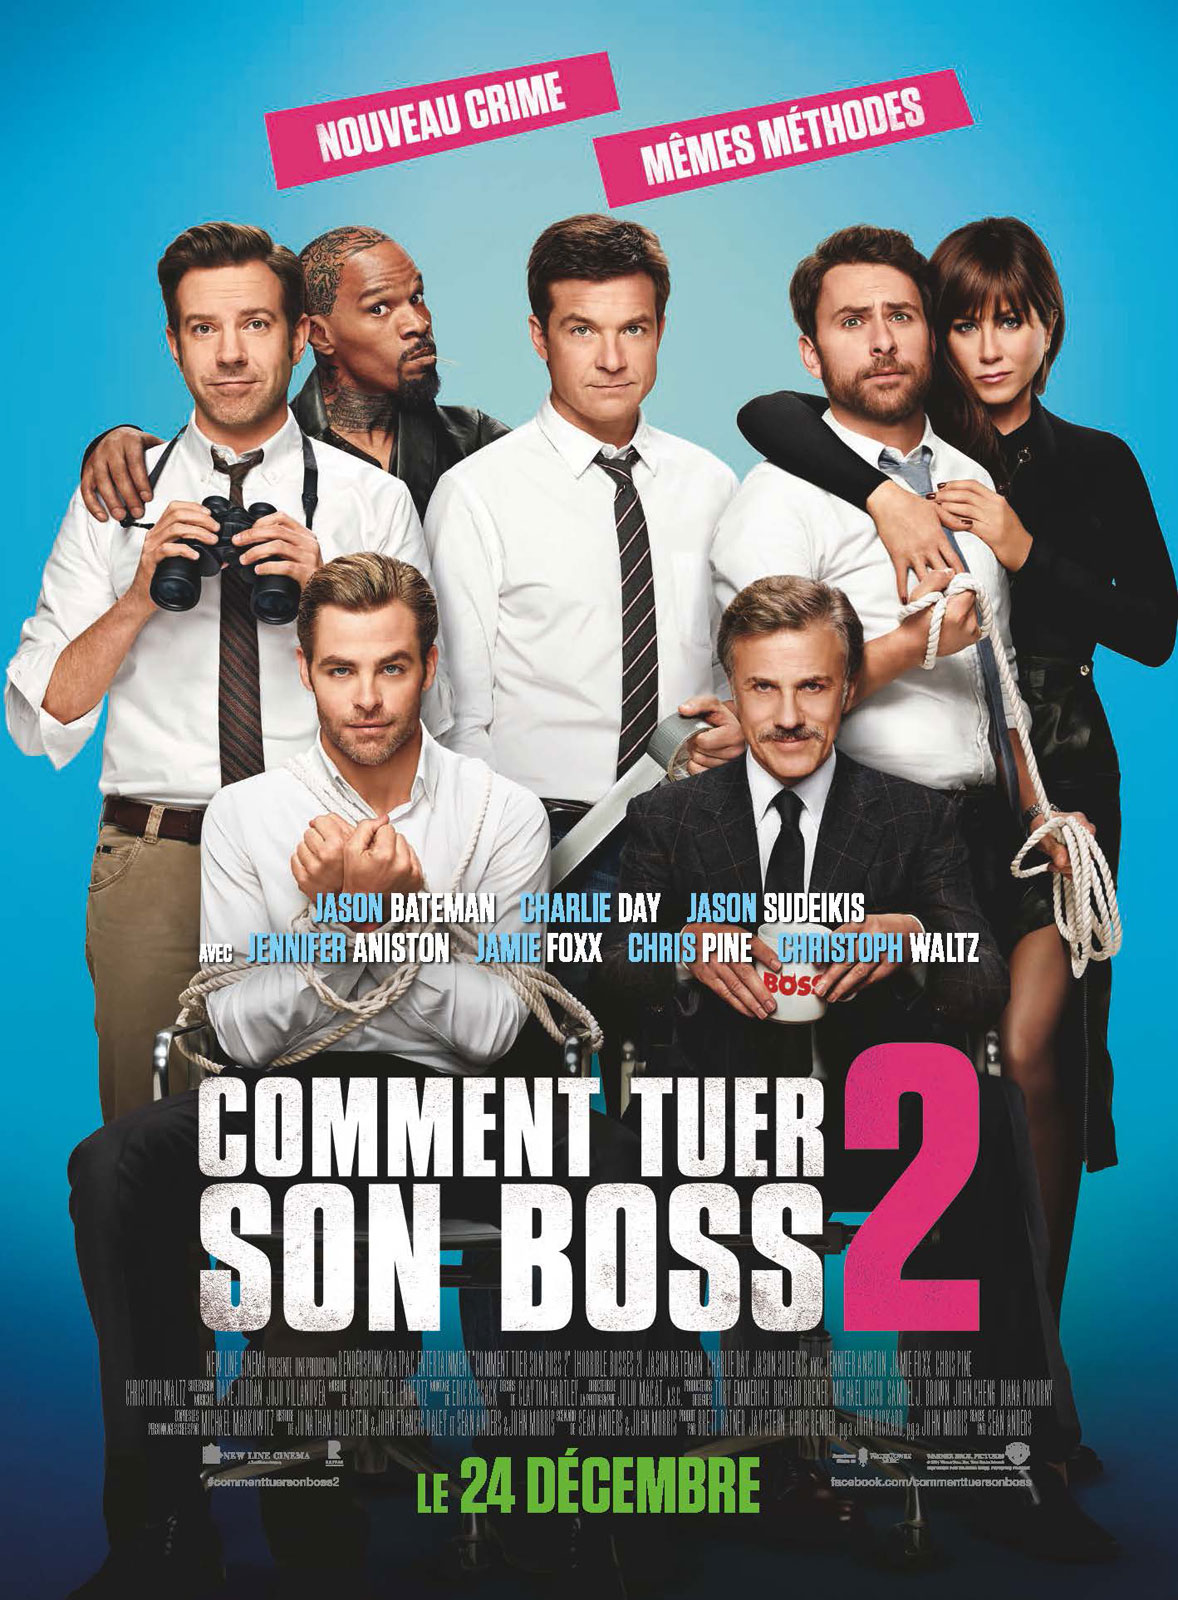 Comment tuer son boss 2 streaming